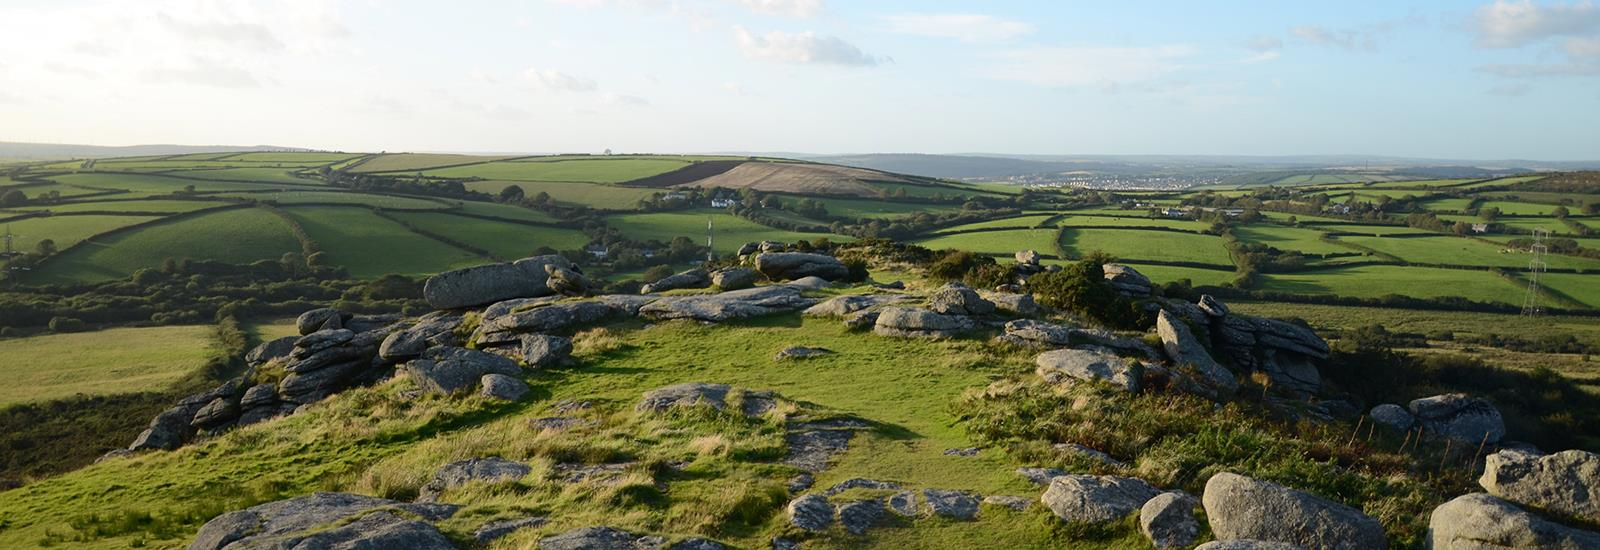 Rugged Bodmin Moor